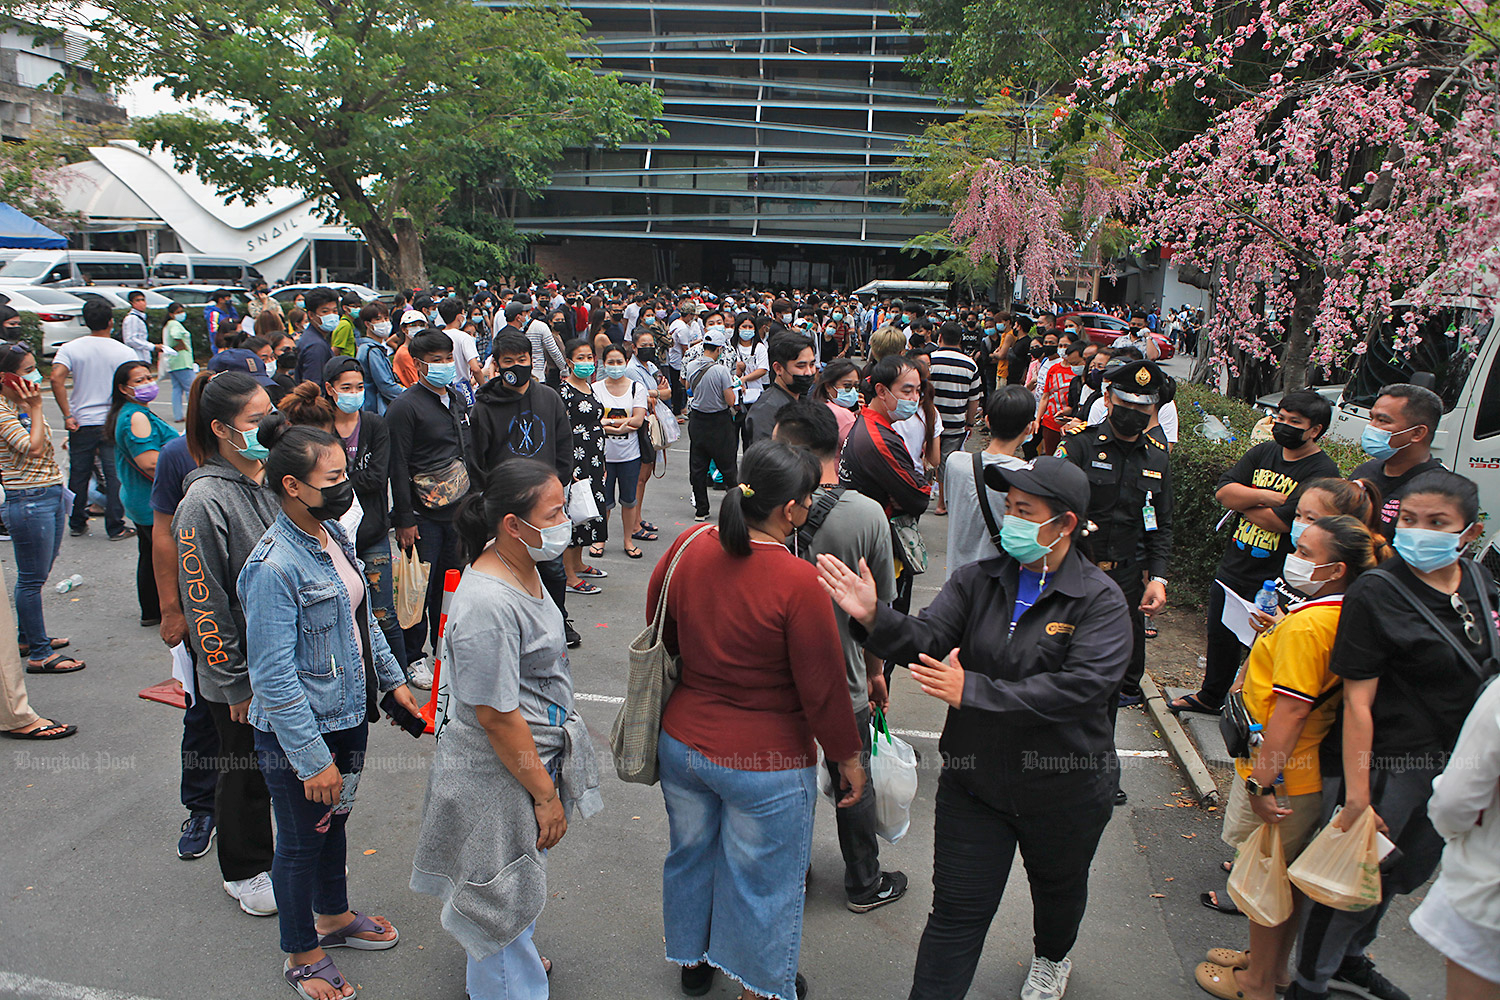 People turn up in droves to get Covid-19 tests near the Bar Bar Bar pub in the Thong Lor area of the capital.(Photo by Nutthawat Wicheanbut)